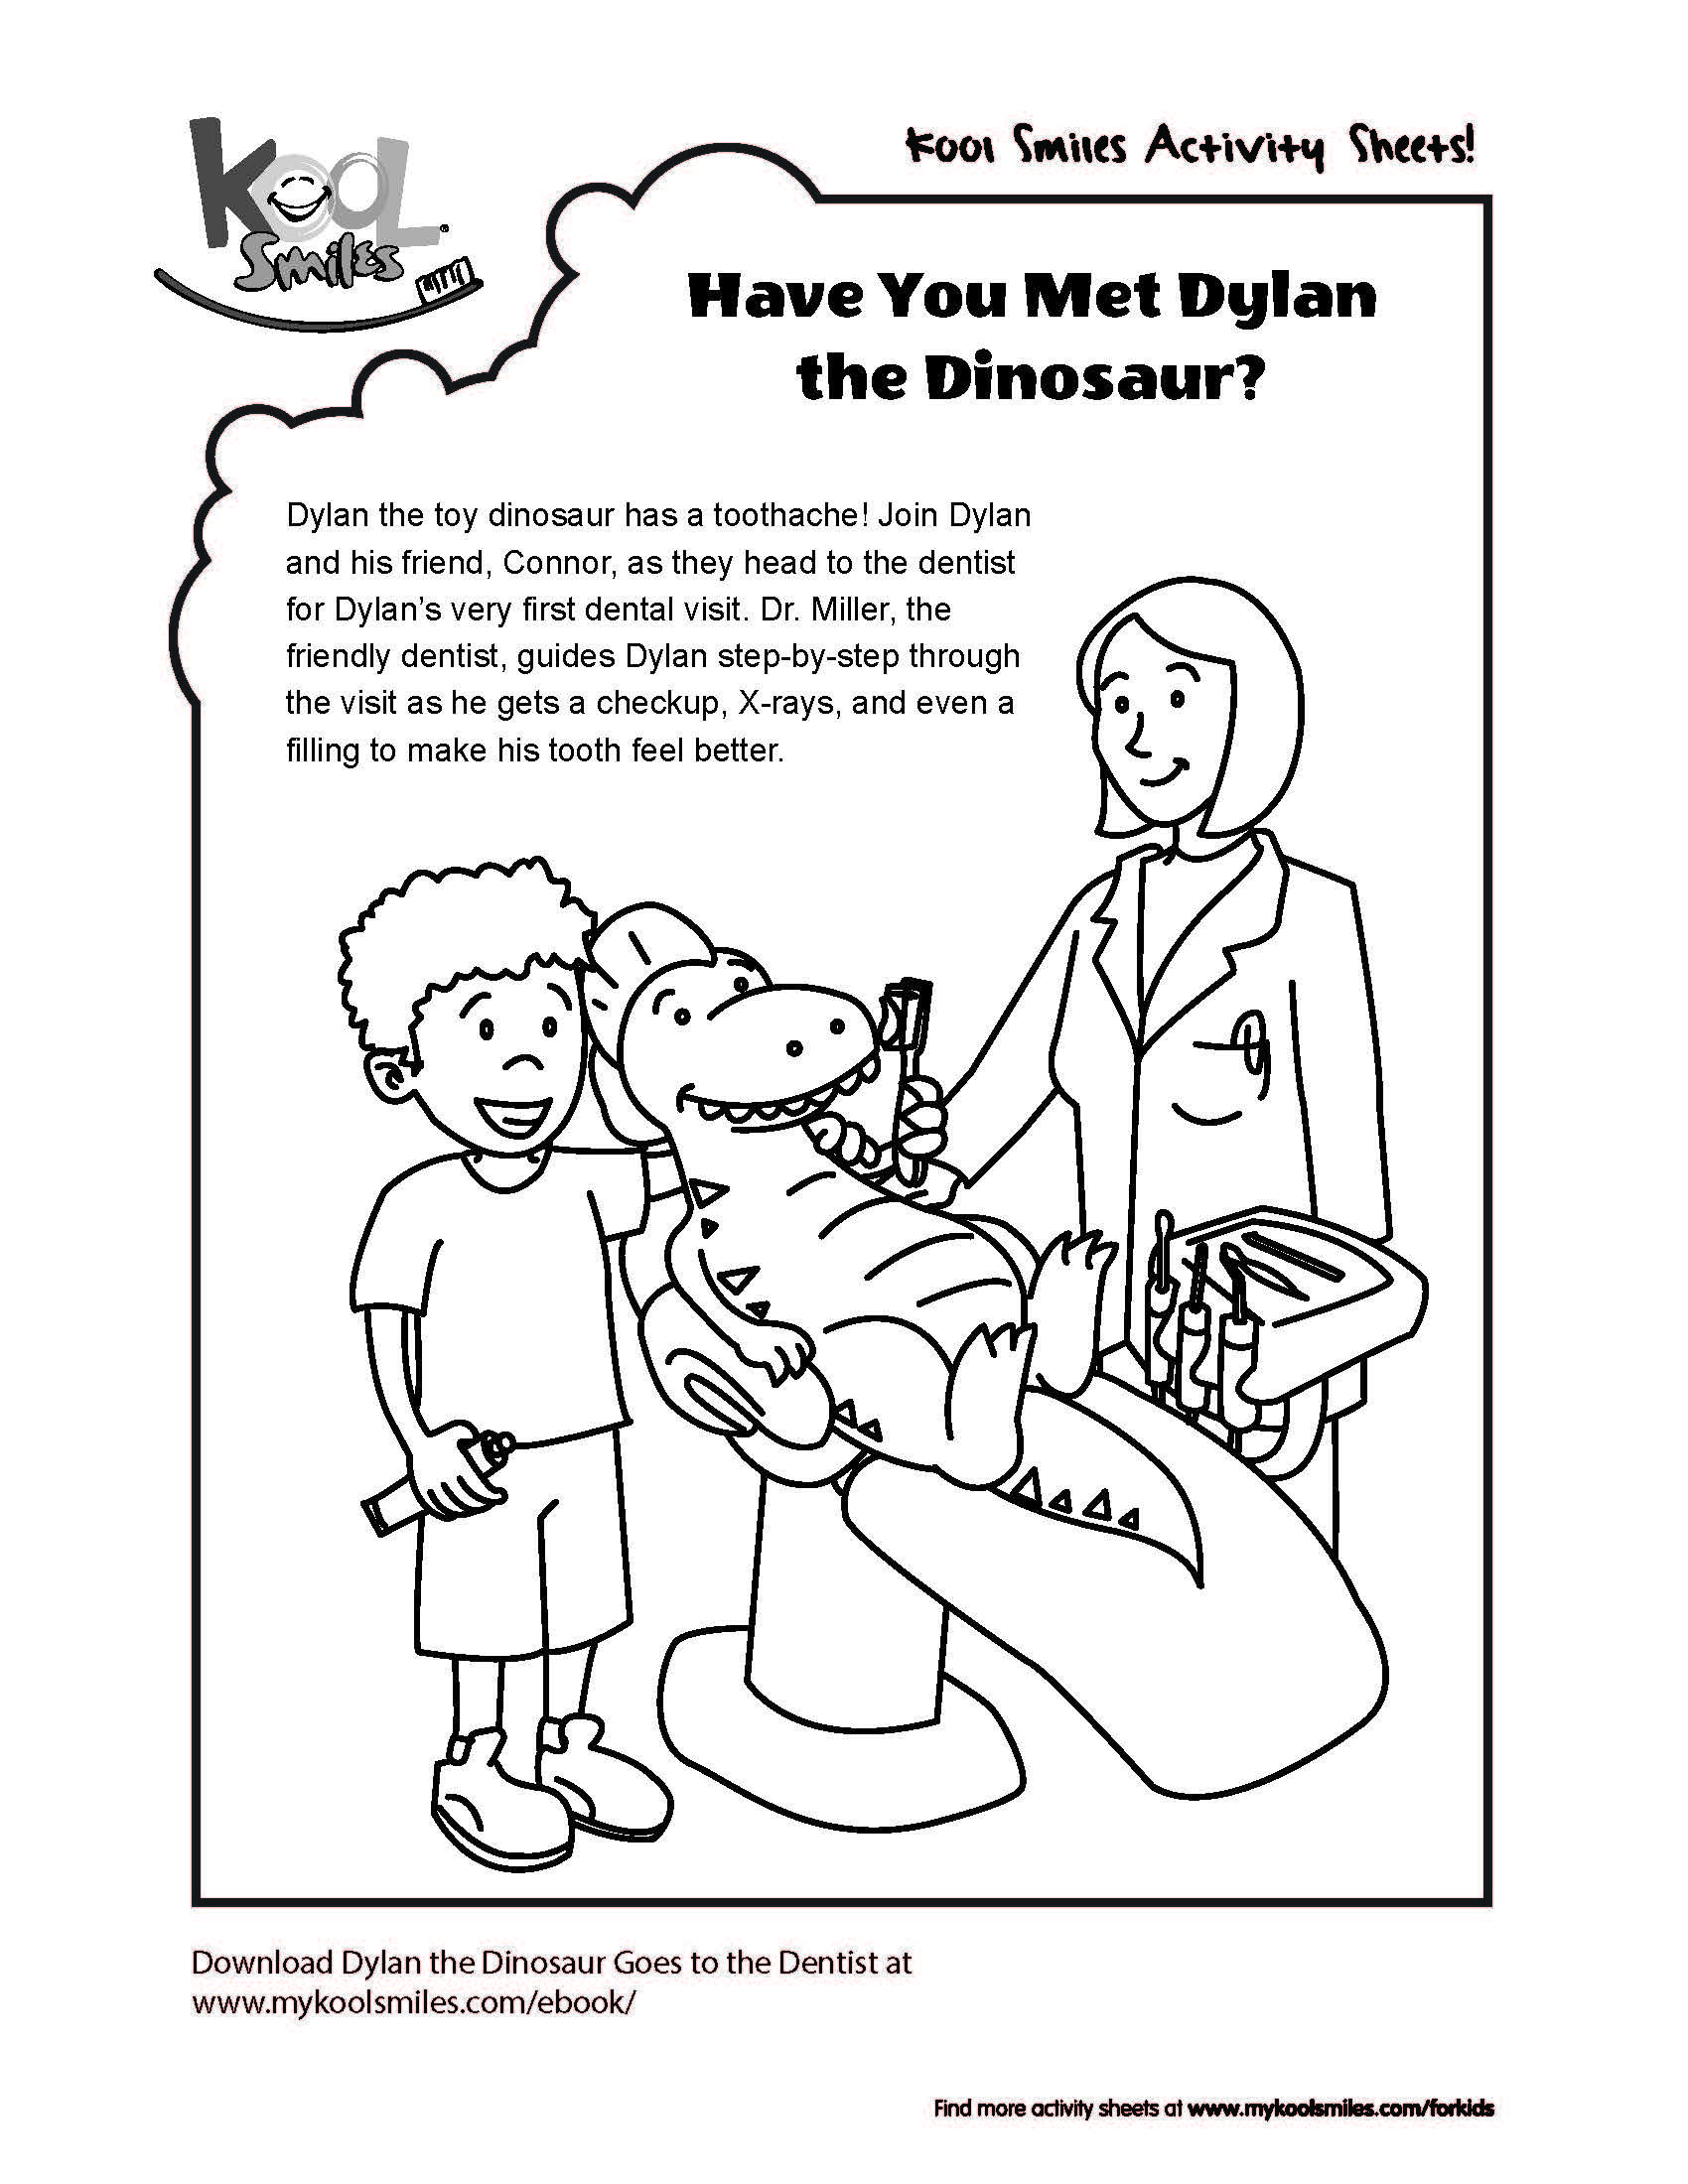 We Have A New Activity Sheet About Dylan The Dinosaur The Main Character Of Our Ebook